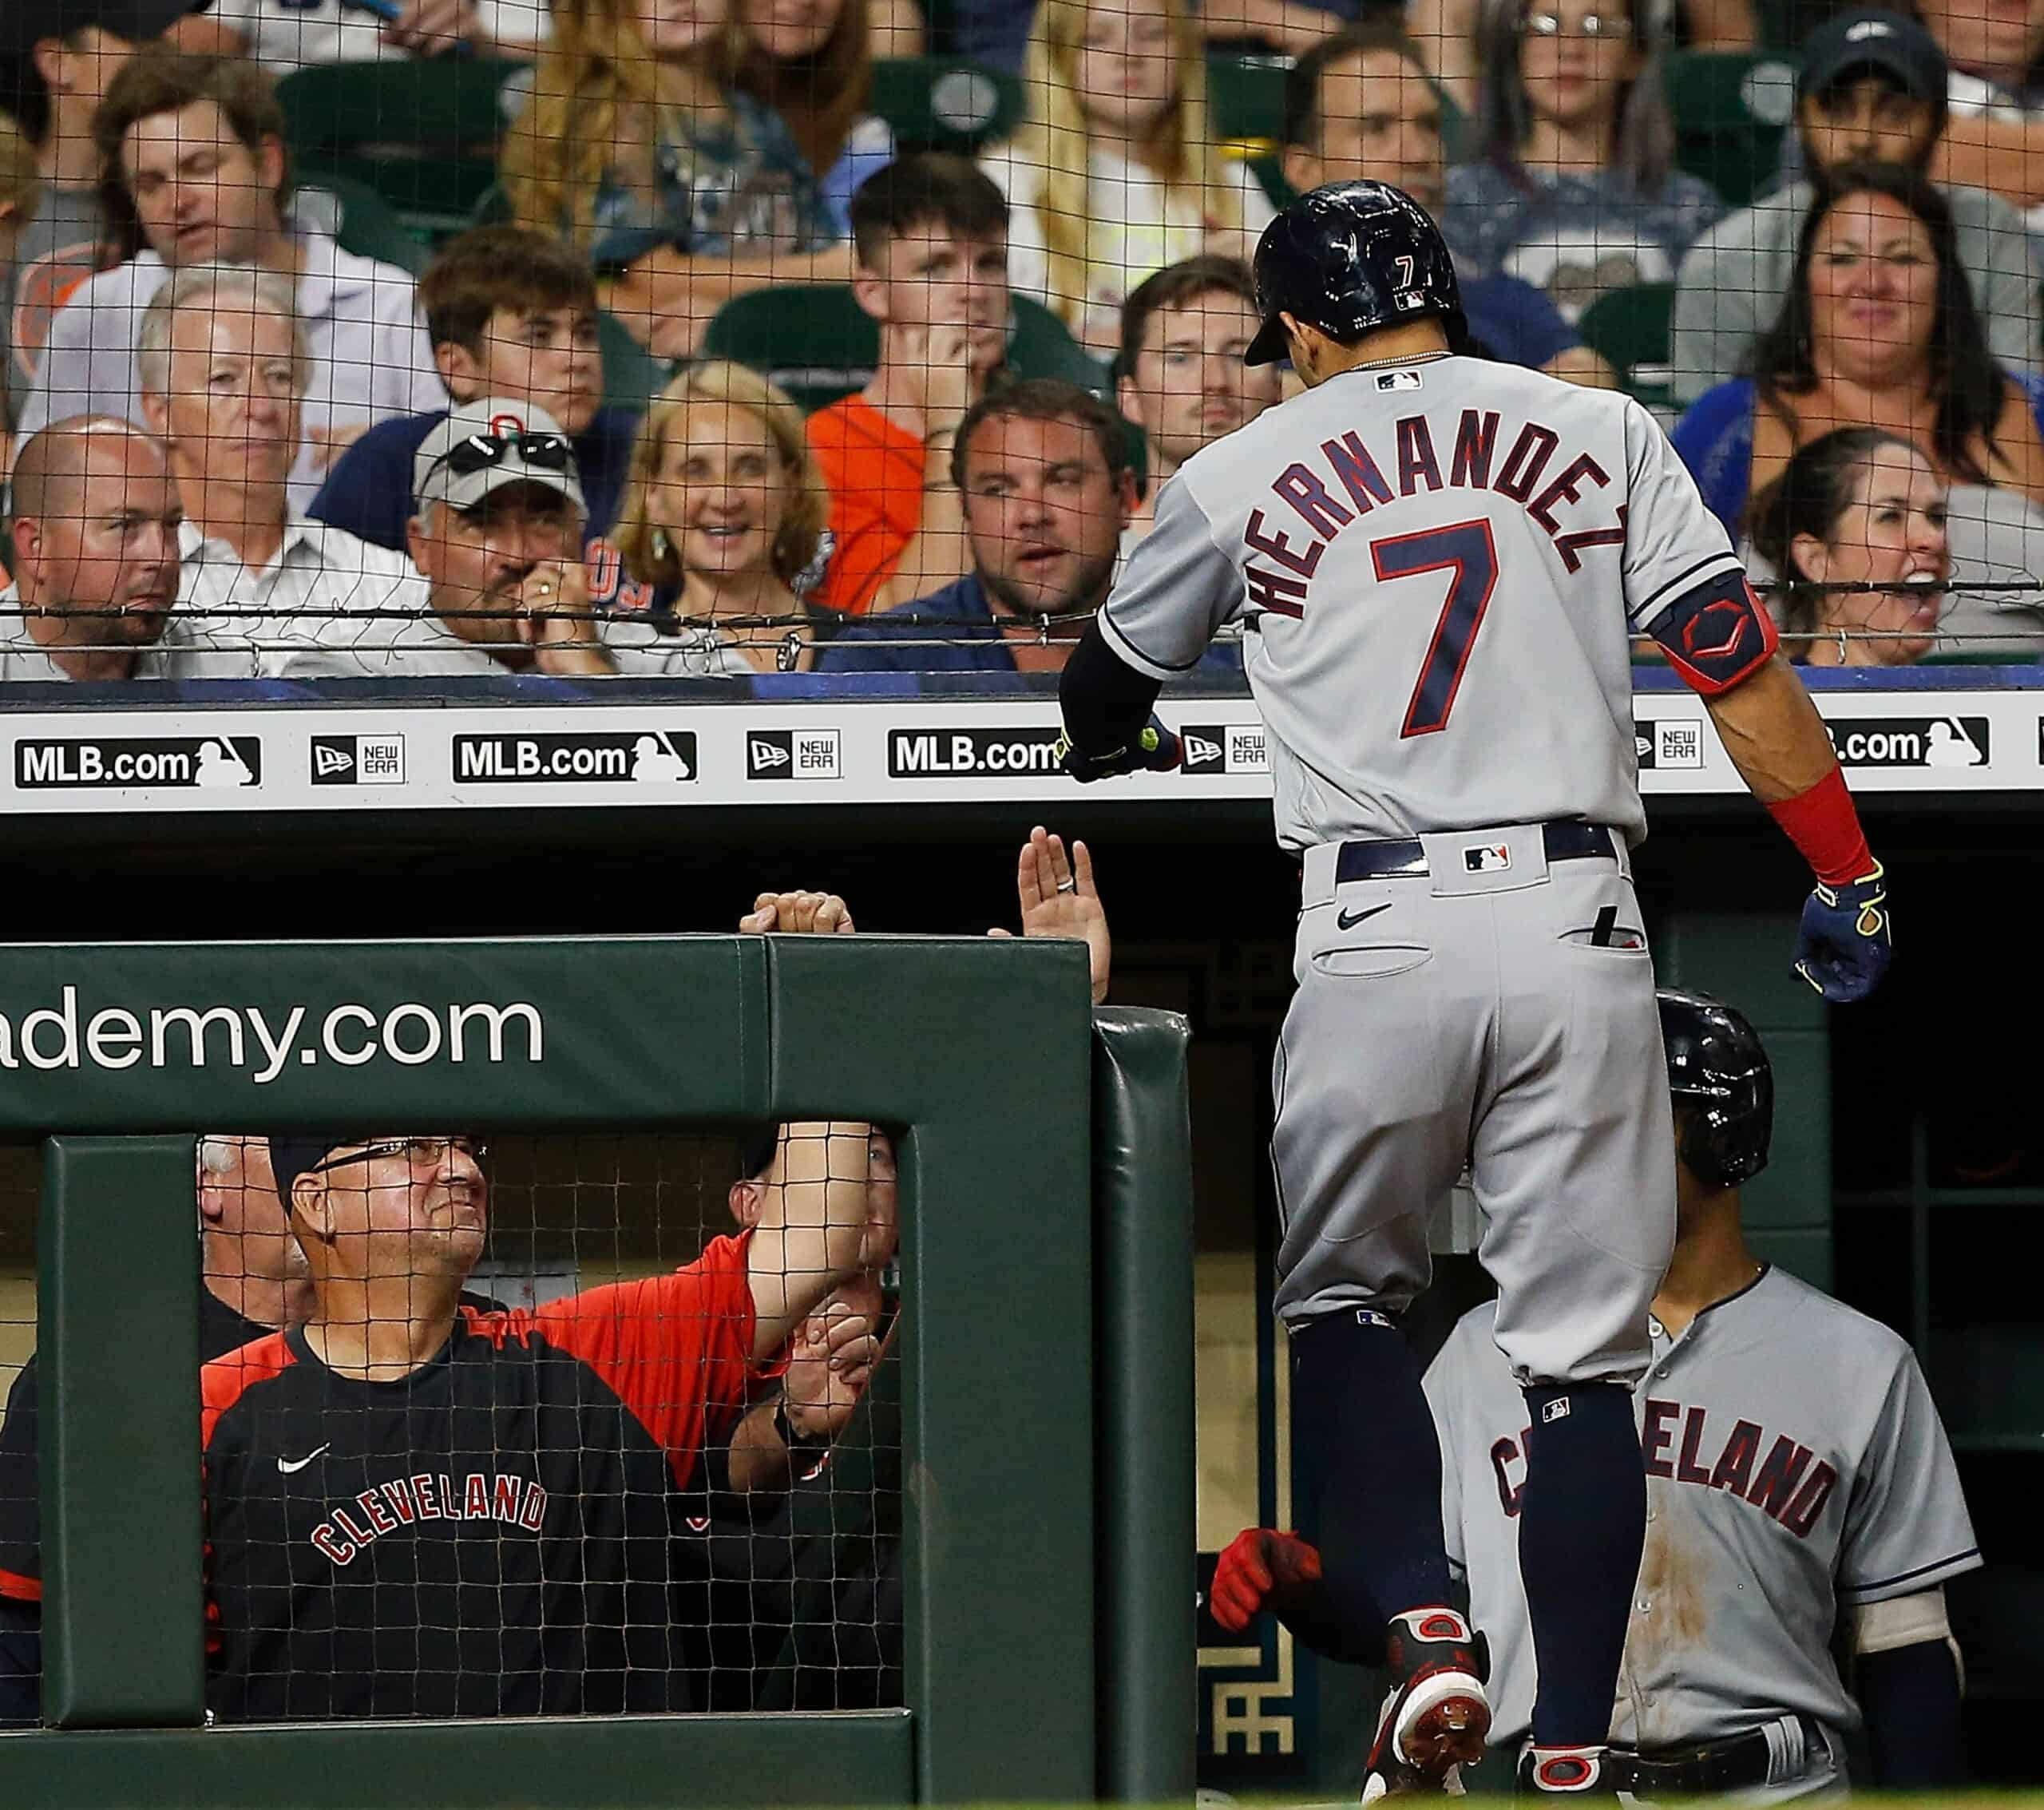 Cesar Hernandez #7 of the Cleveland Indians celebrates in the dugout after hitting a home run in the seventh inning against the Houston Astros at Minute Maid Park on July 21, 2021 in Houston, Texas.